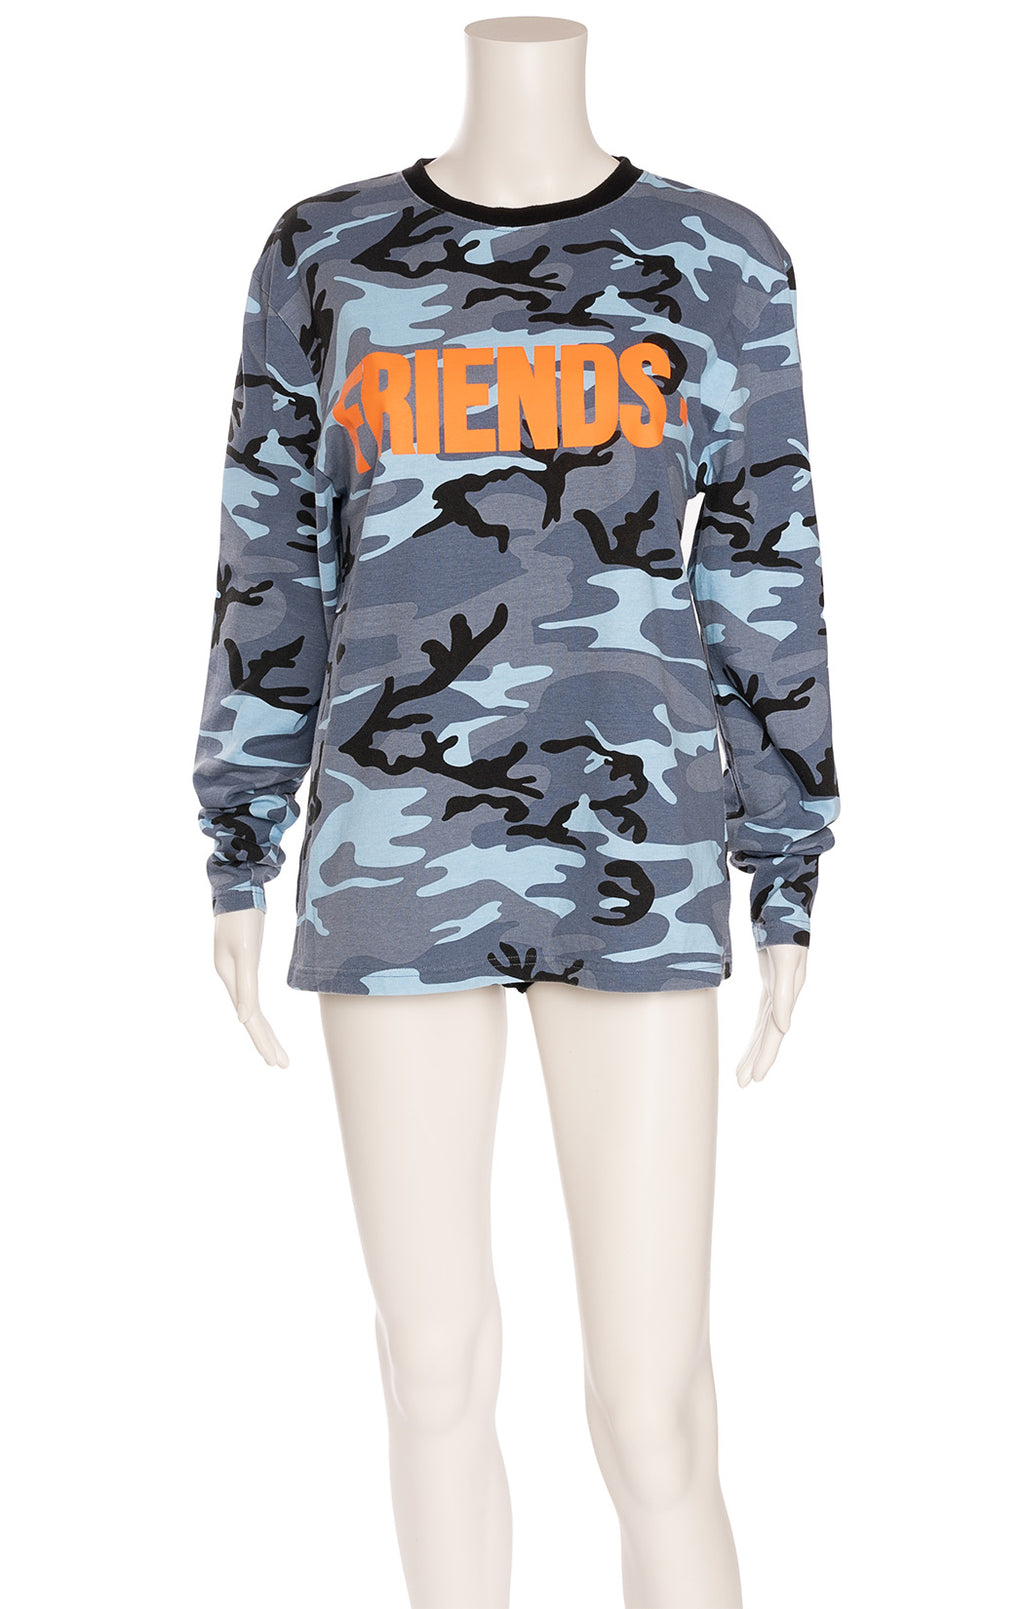 Multi colored blue camouflage long sleeve crew neck t-shirt with orange writing on front and logo on back